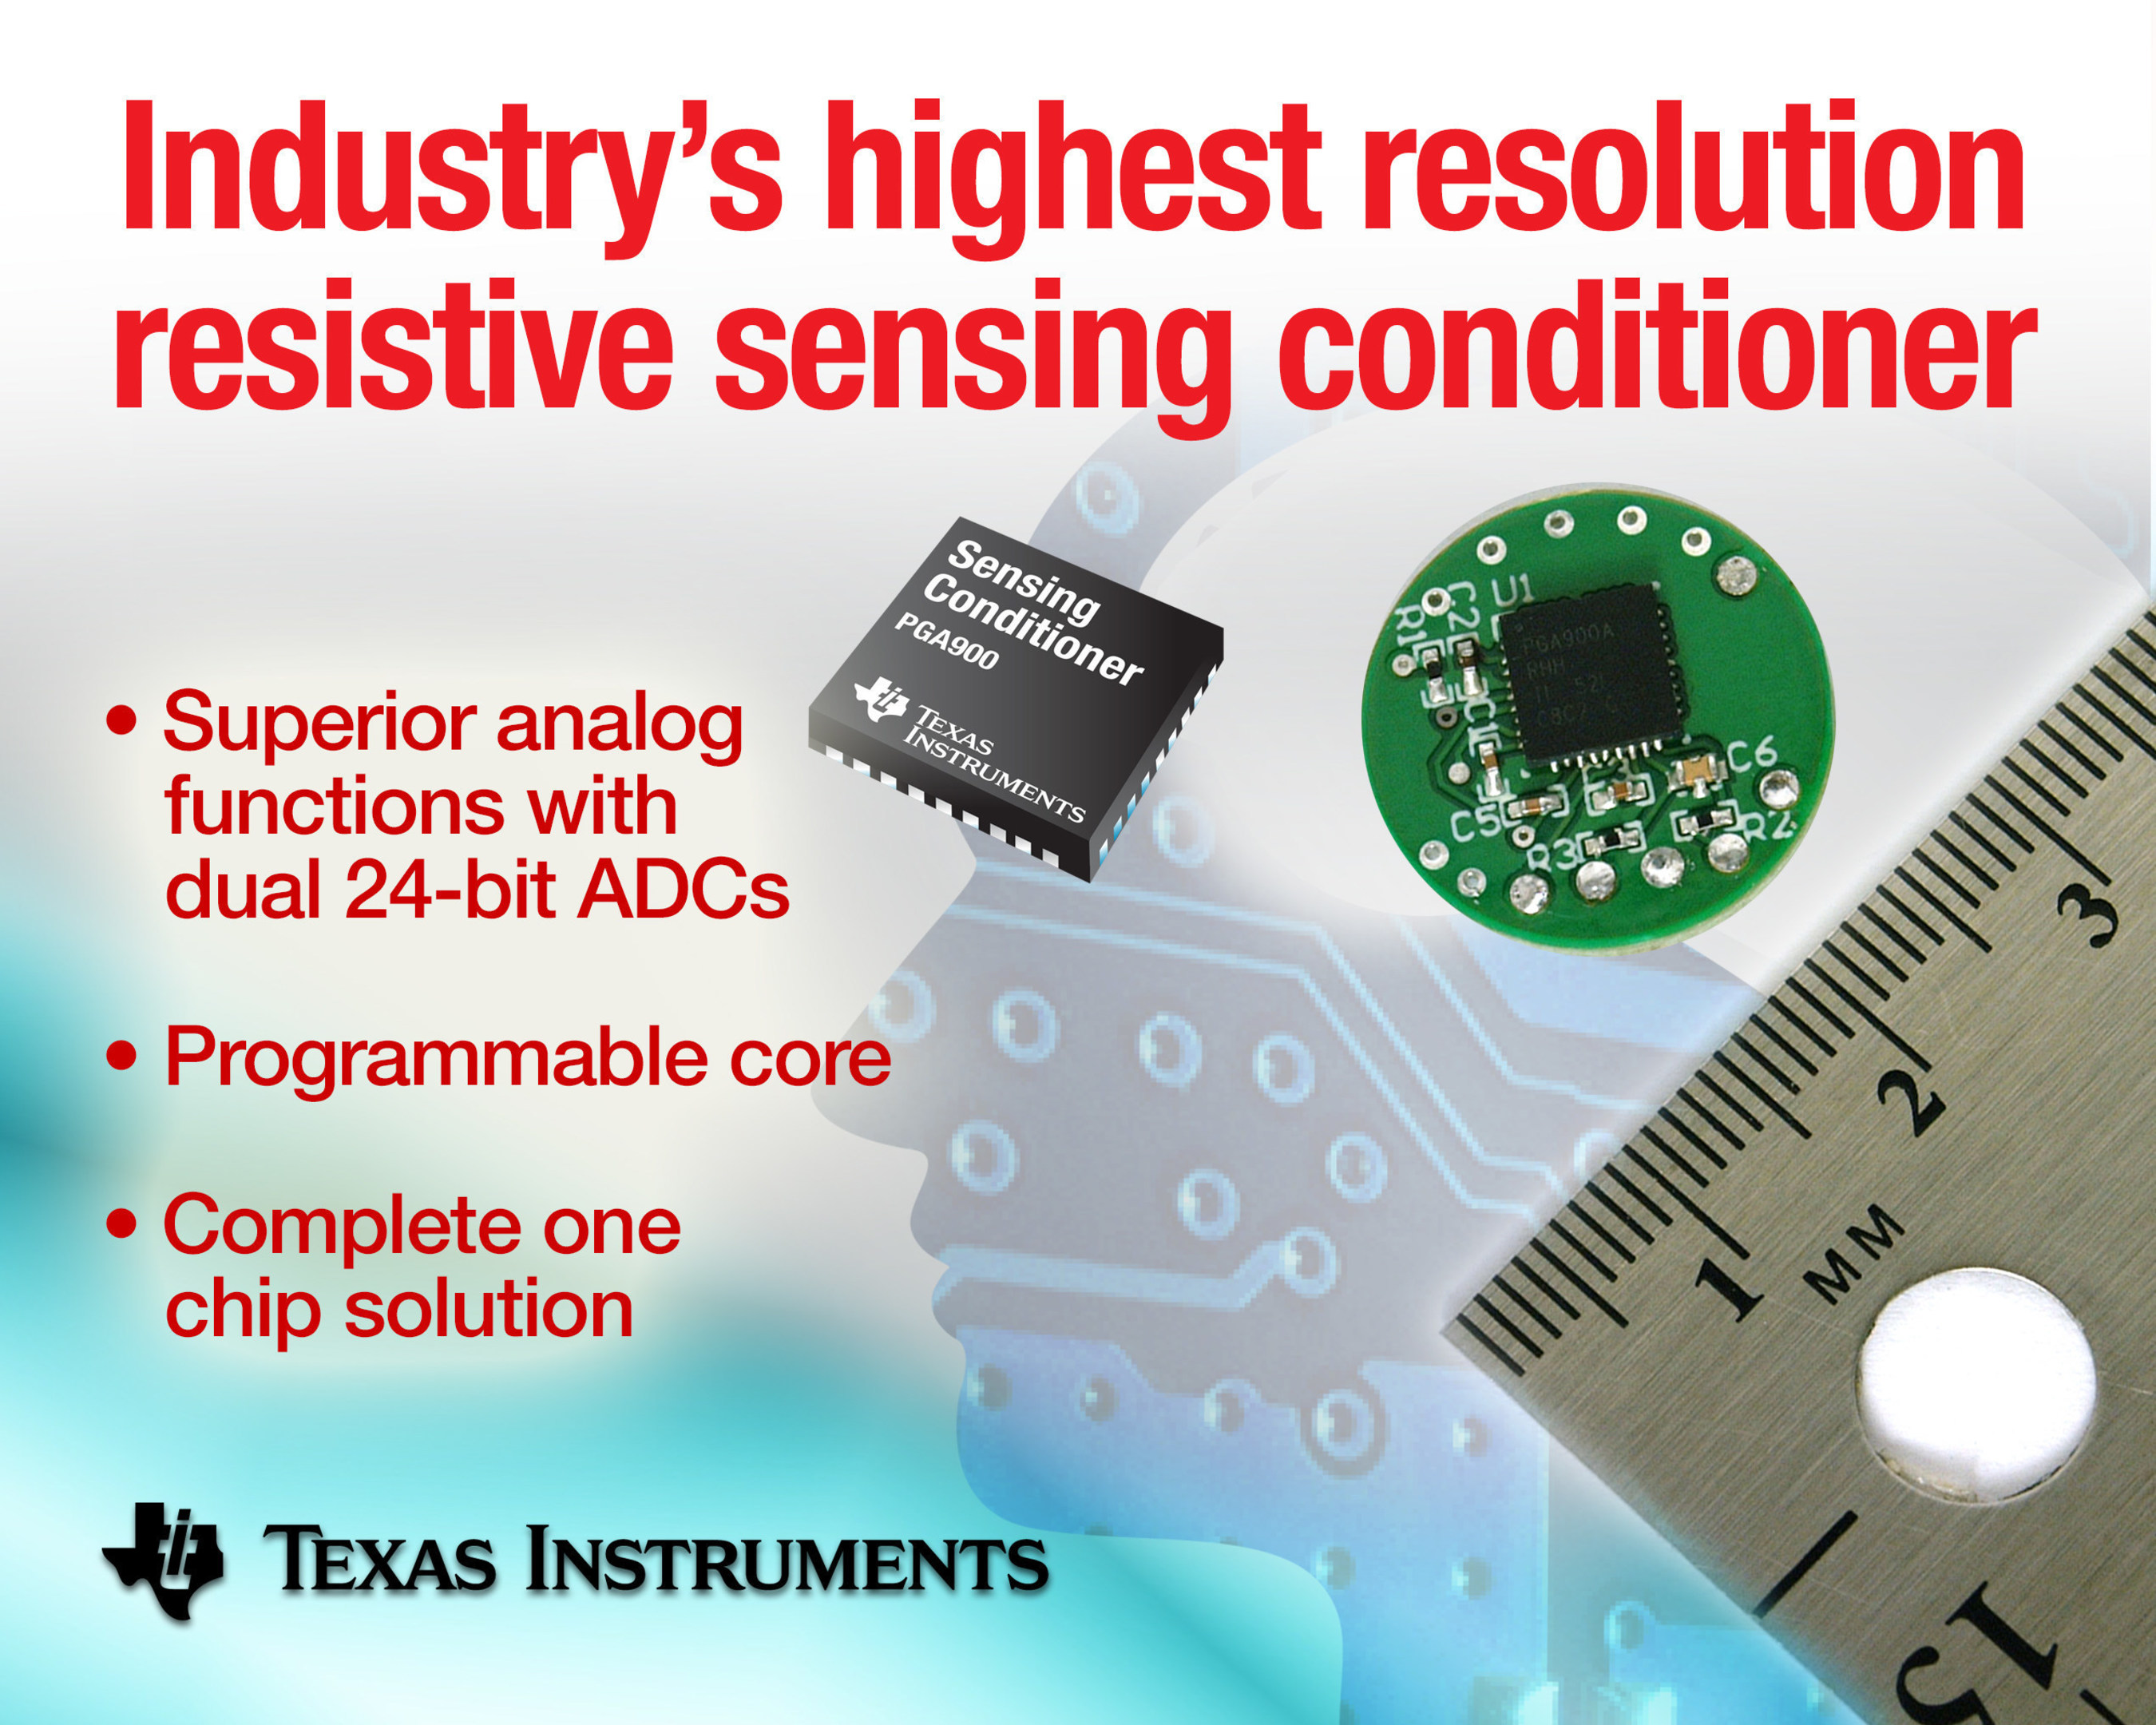 TI introduces the highest resolution resistive sensing conditioner, offering performance and precision without compromise